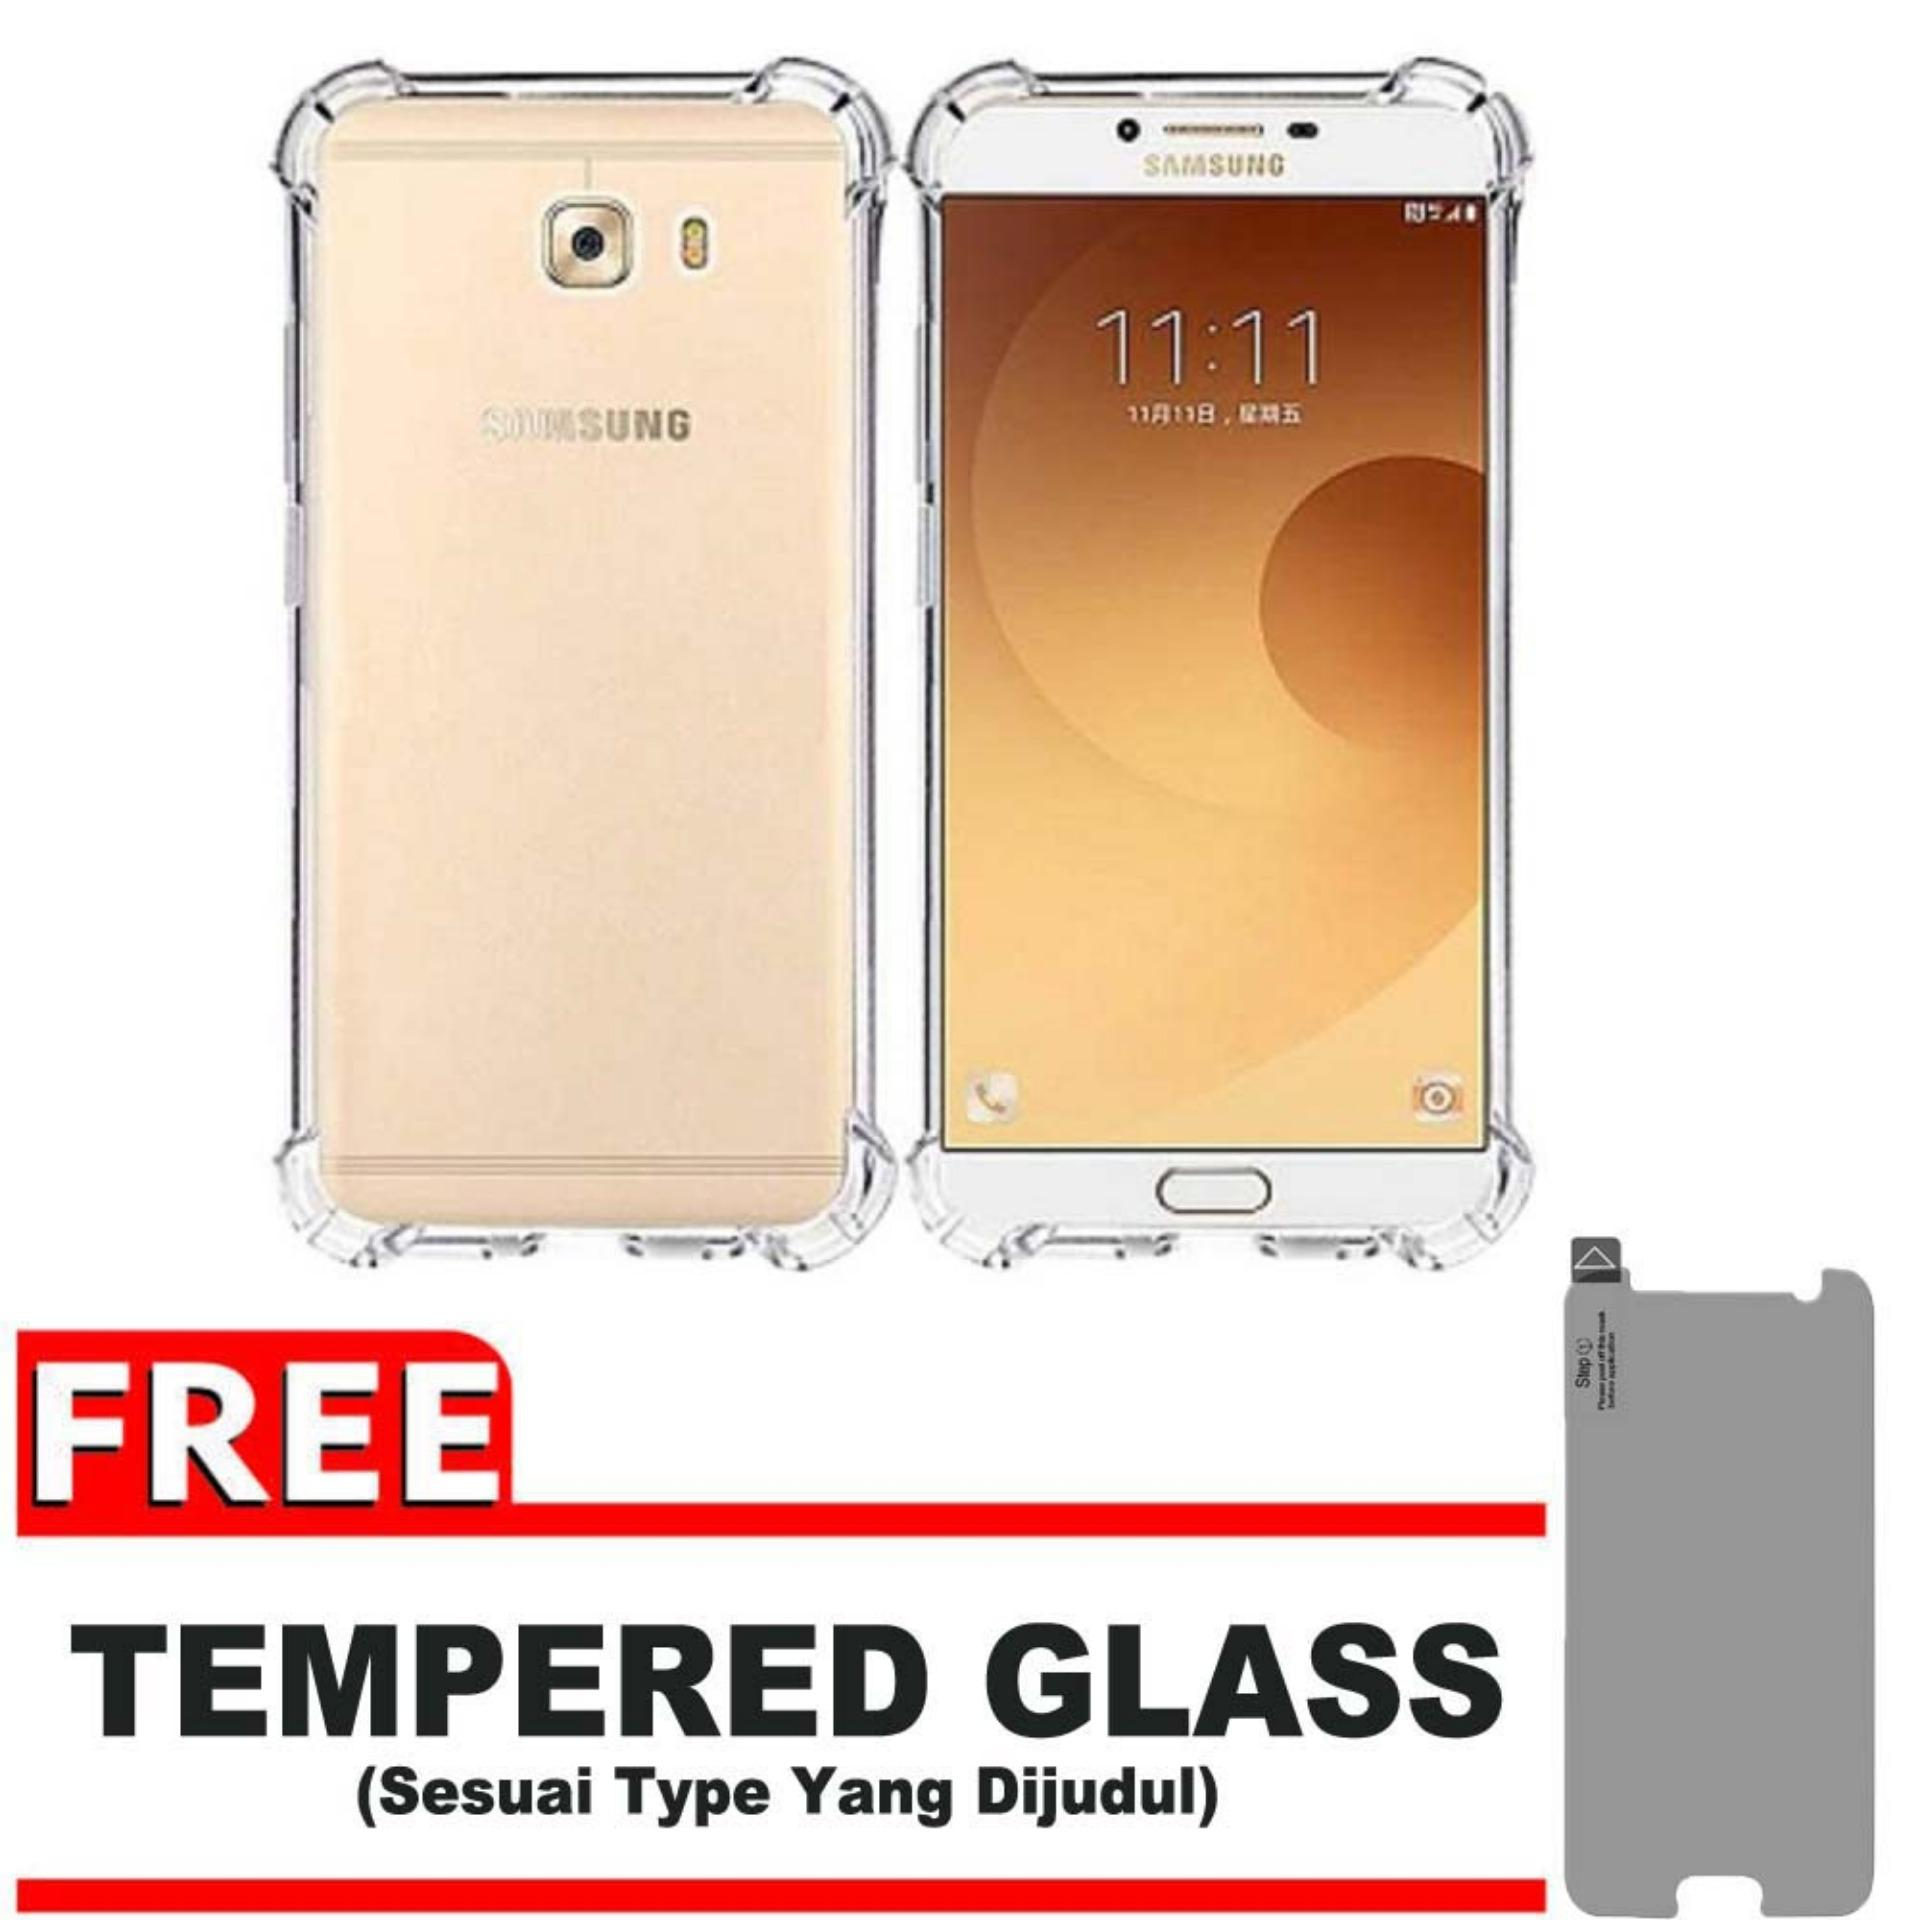 Info Harga Casing Hp Samsung Galaxy Grand Duos November 2018 Paling Assesoris Lampu Led Baru